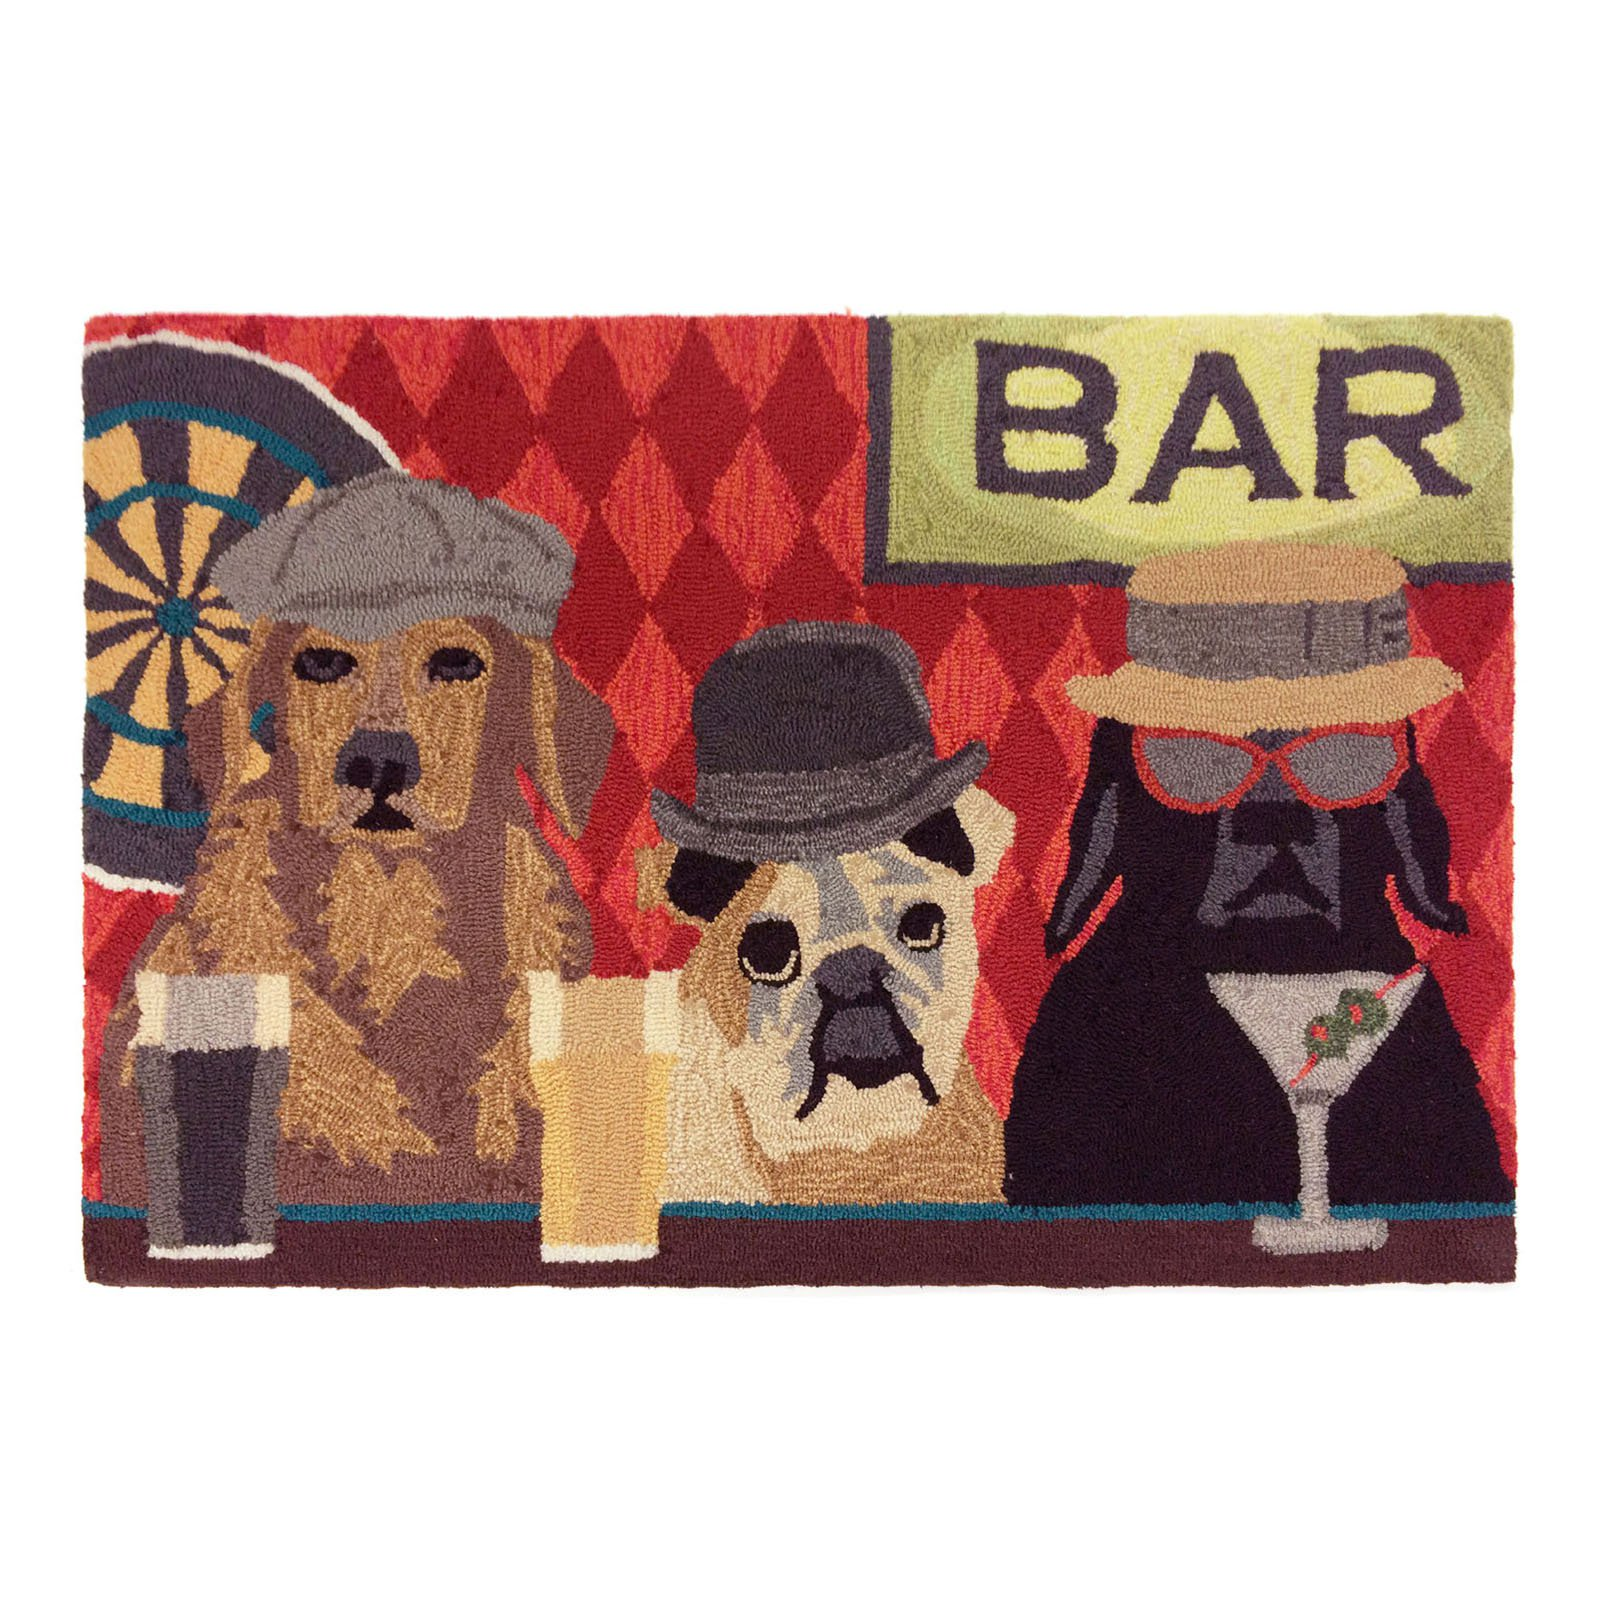 Liora Manne Frontporch 1809/37 Bar Patrol Port Area Rug 20 Inches X 30 Inches